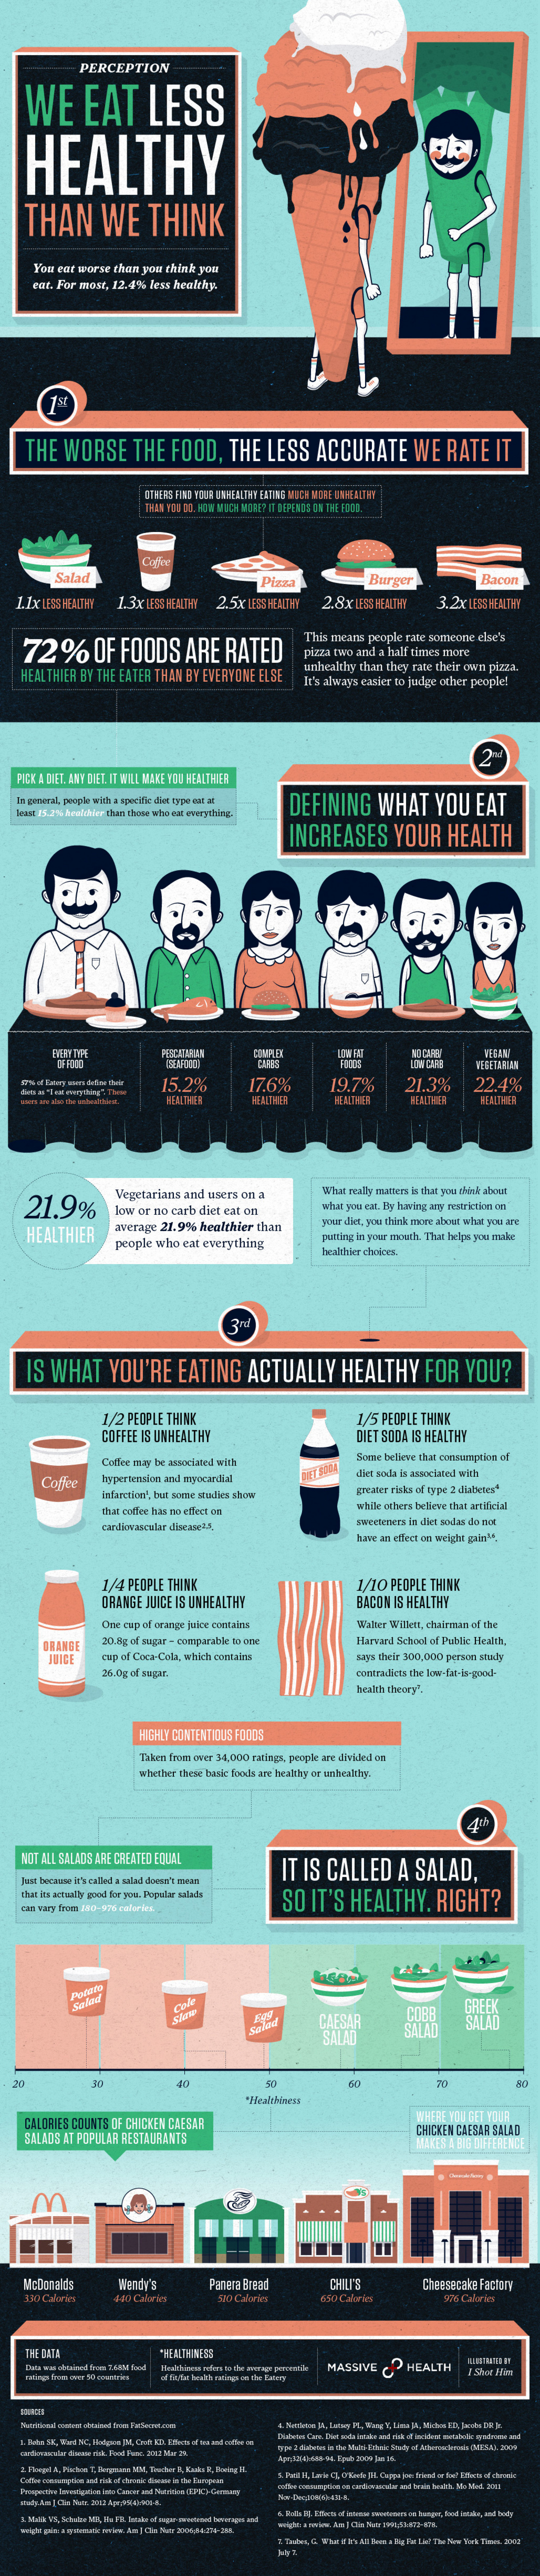 Massive Health - Unhealthy Eating Infographic